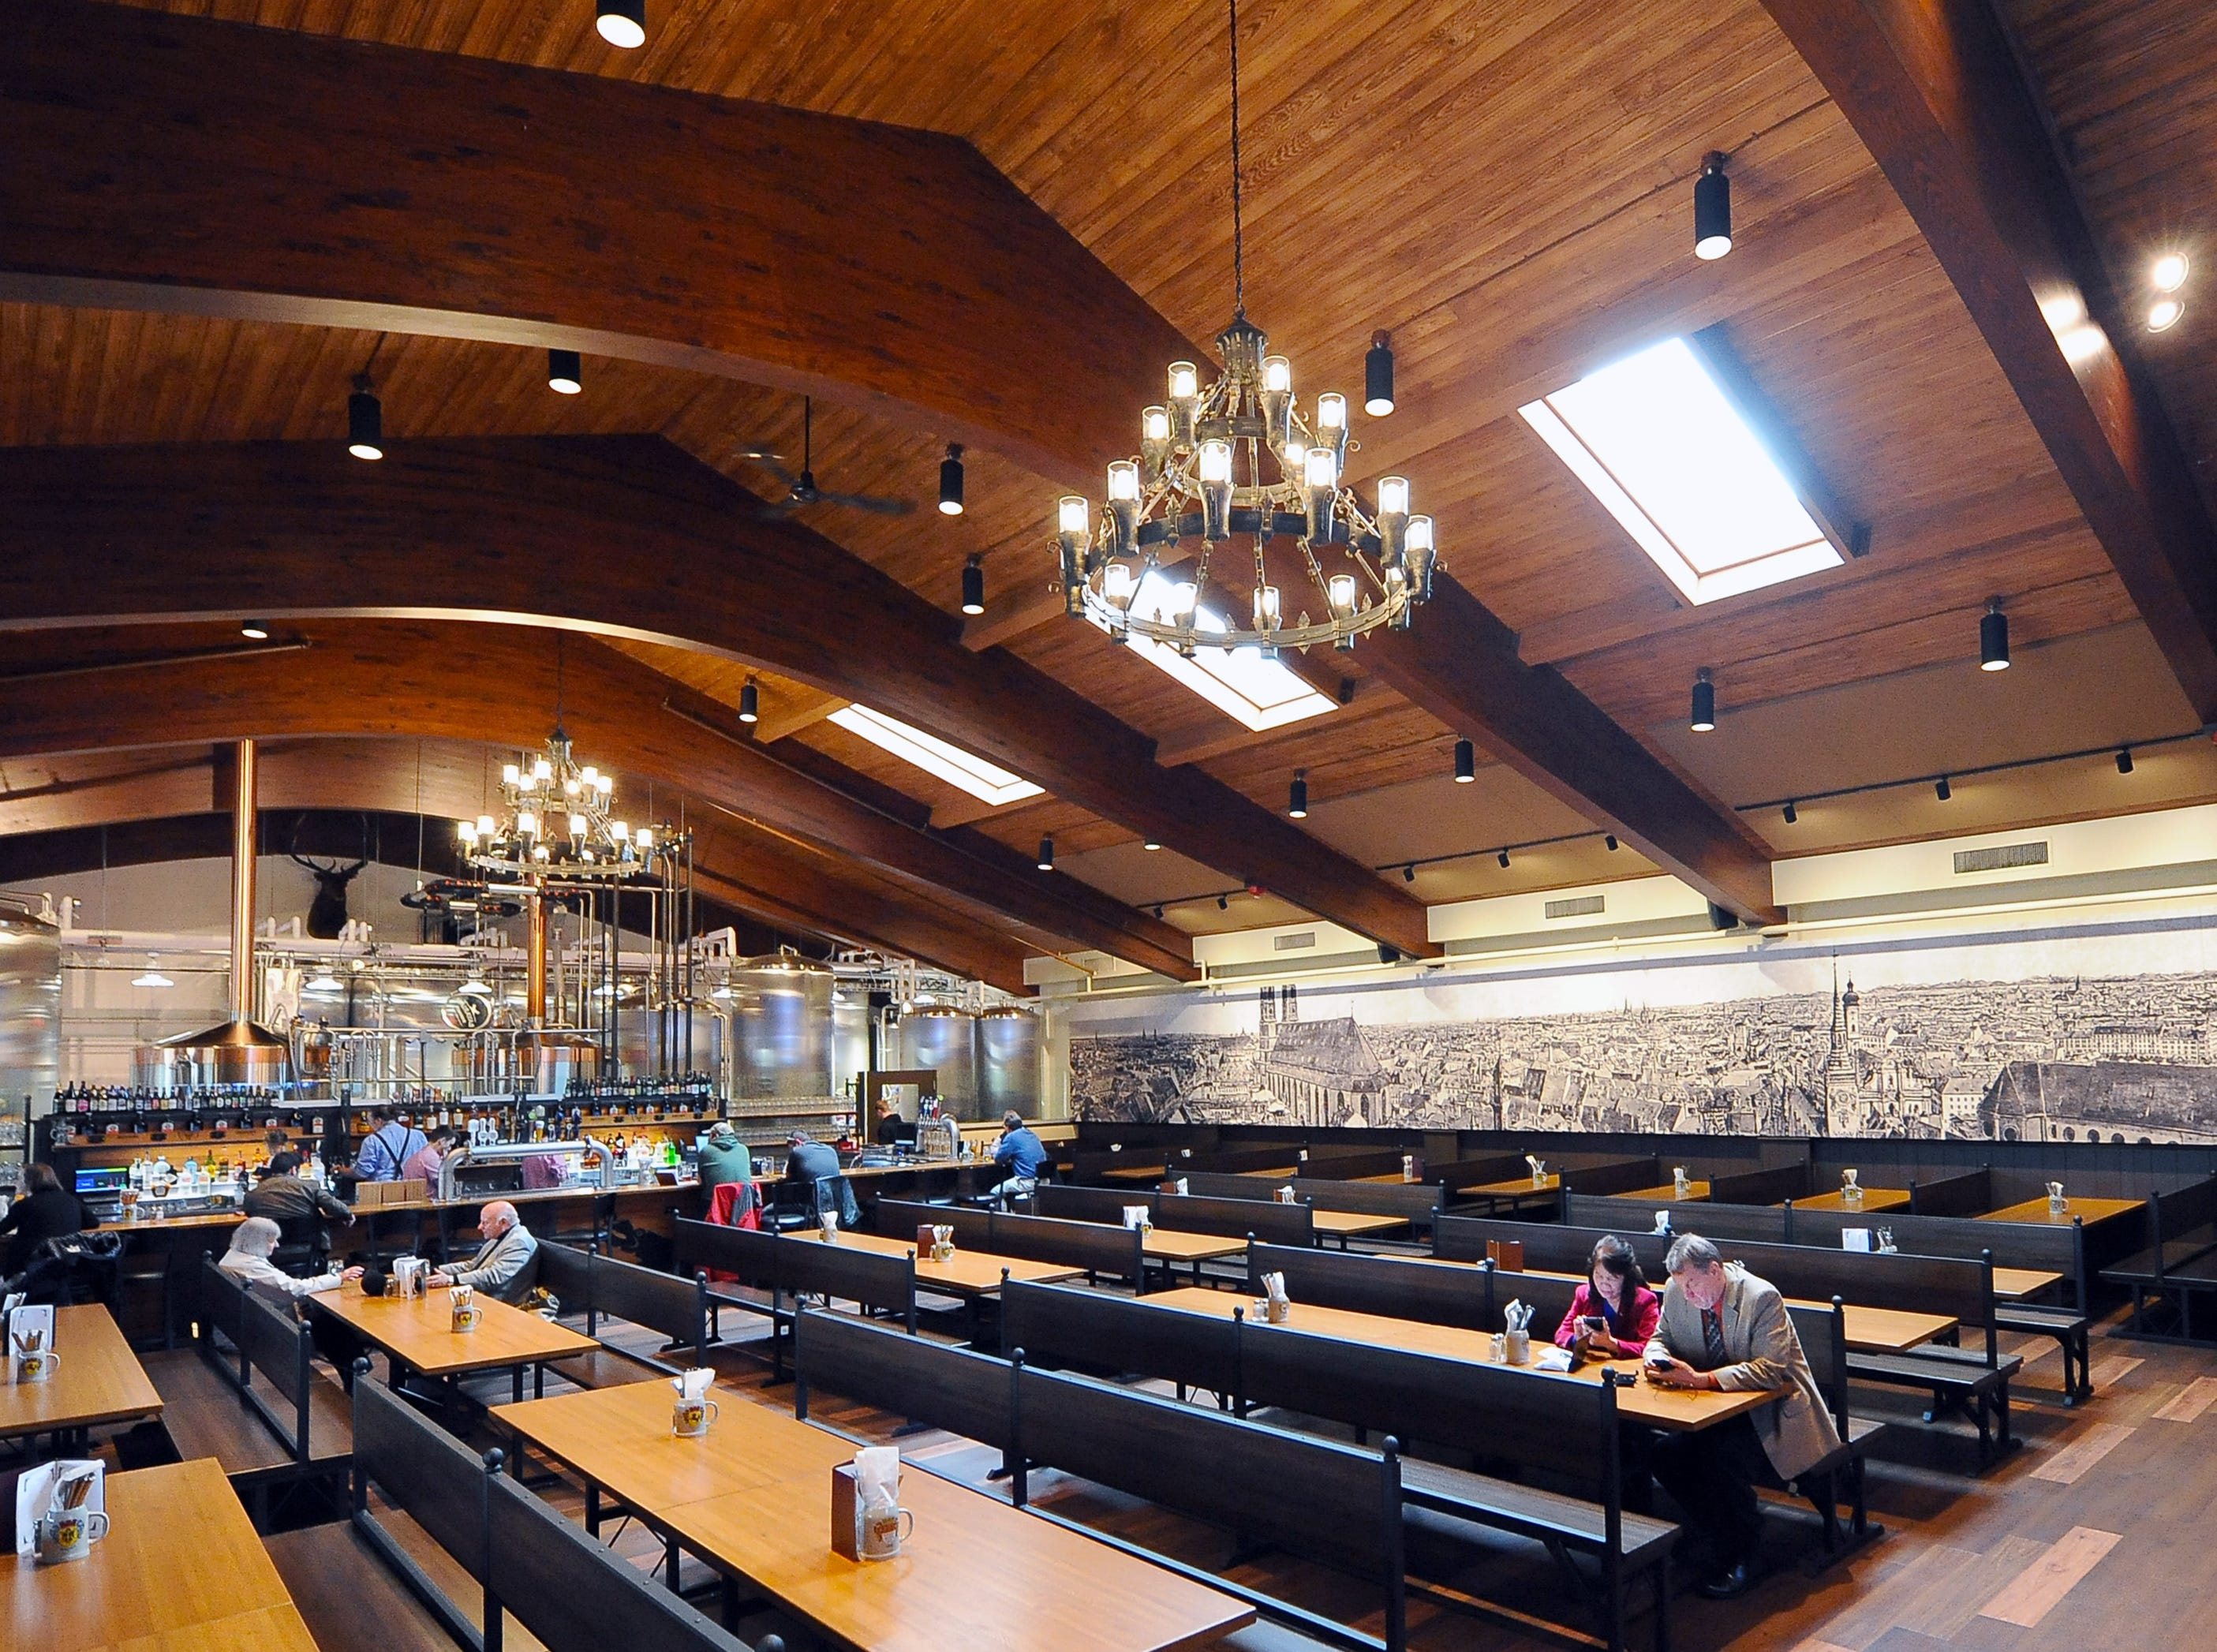 The Bavarian Bierhaus' beer hall includes space for over 300 guests and its own brewery system.